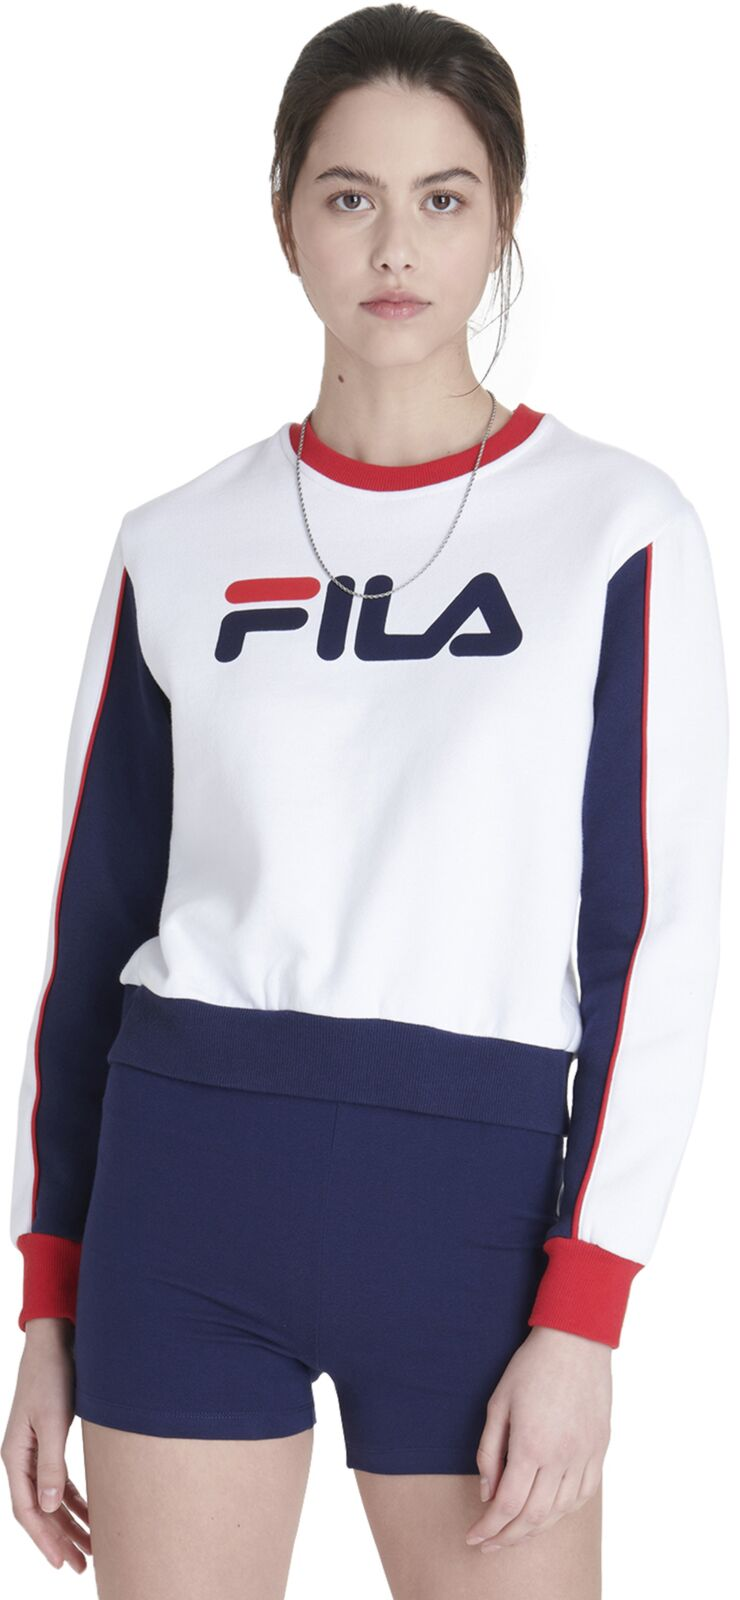 Fila Nuria Colourblock Sweatshirt White